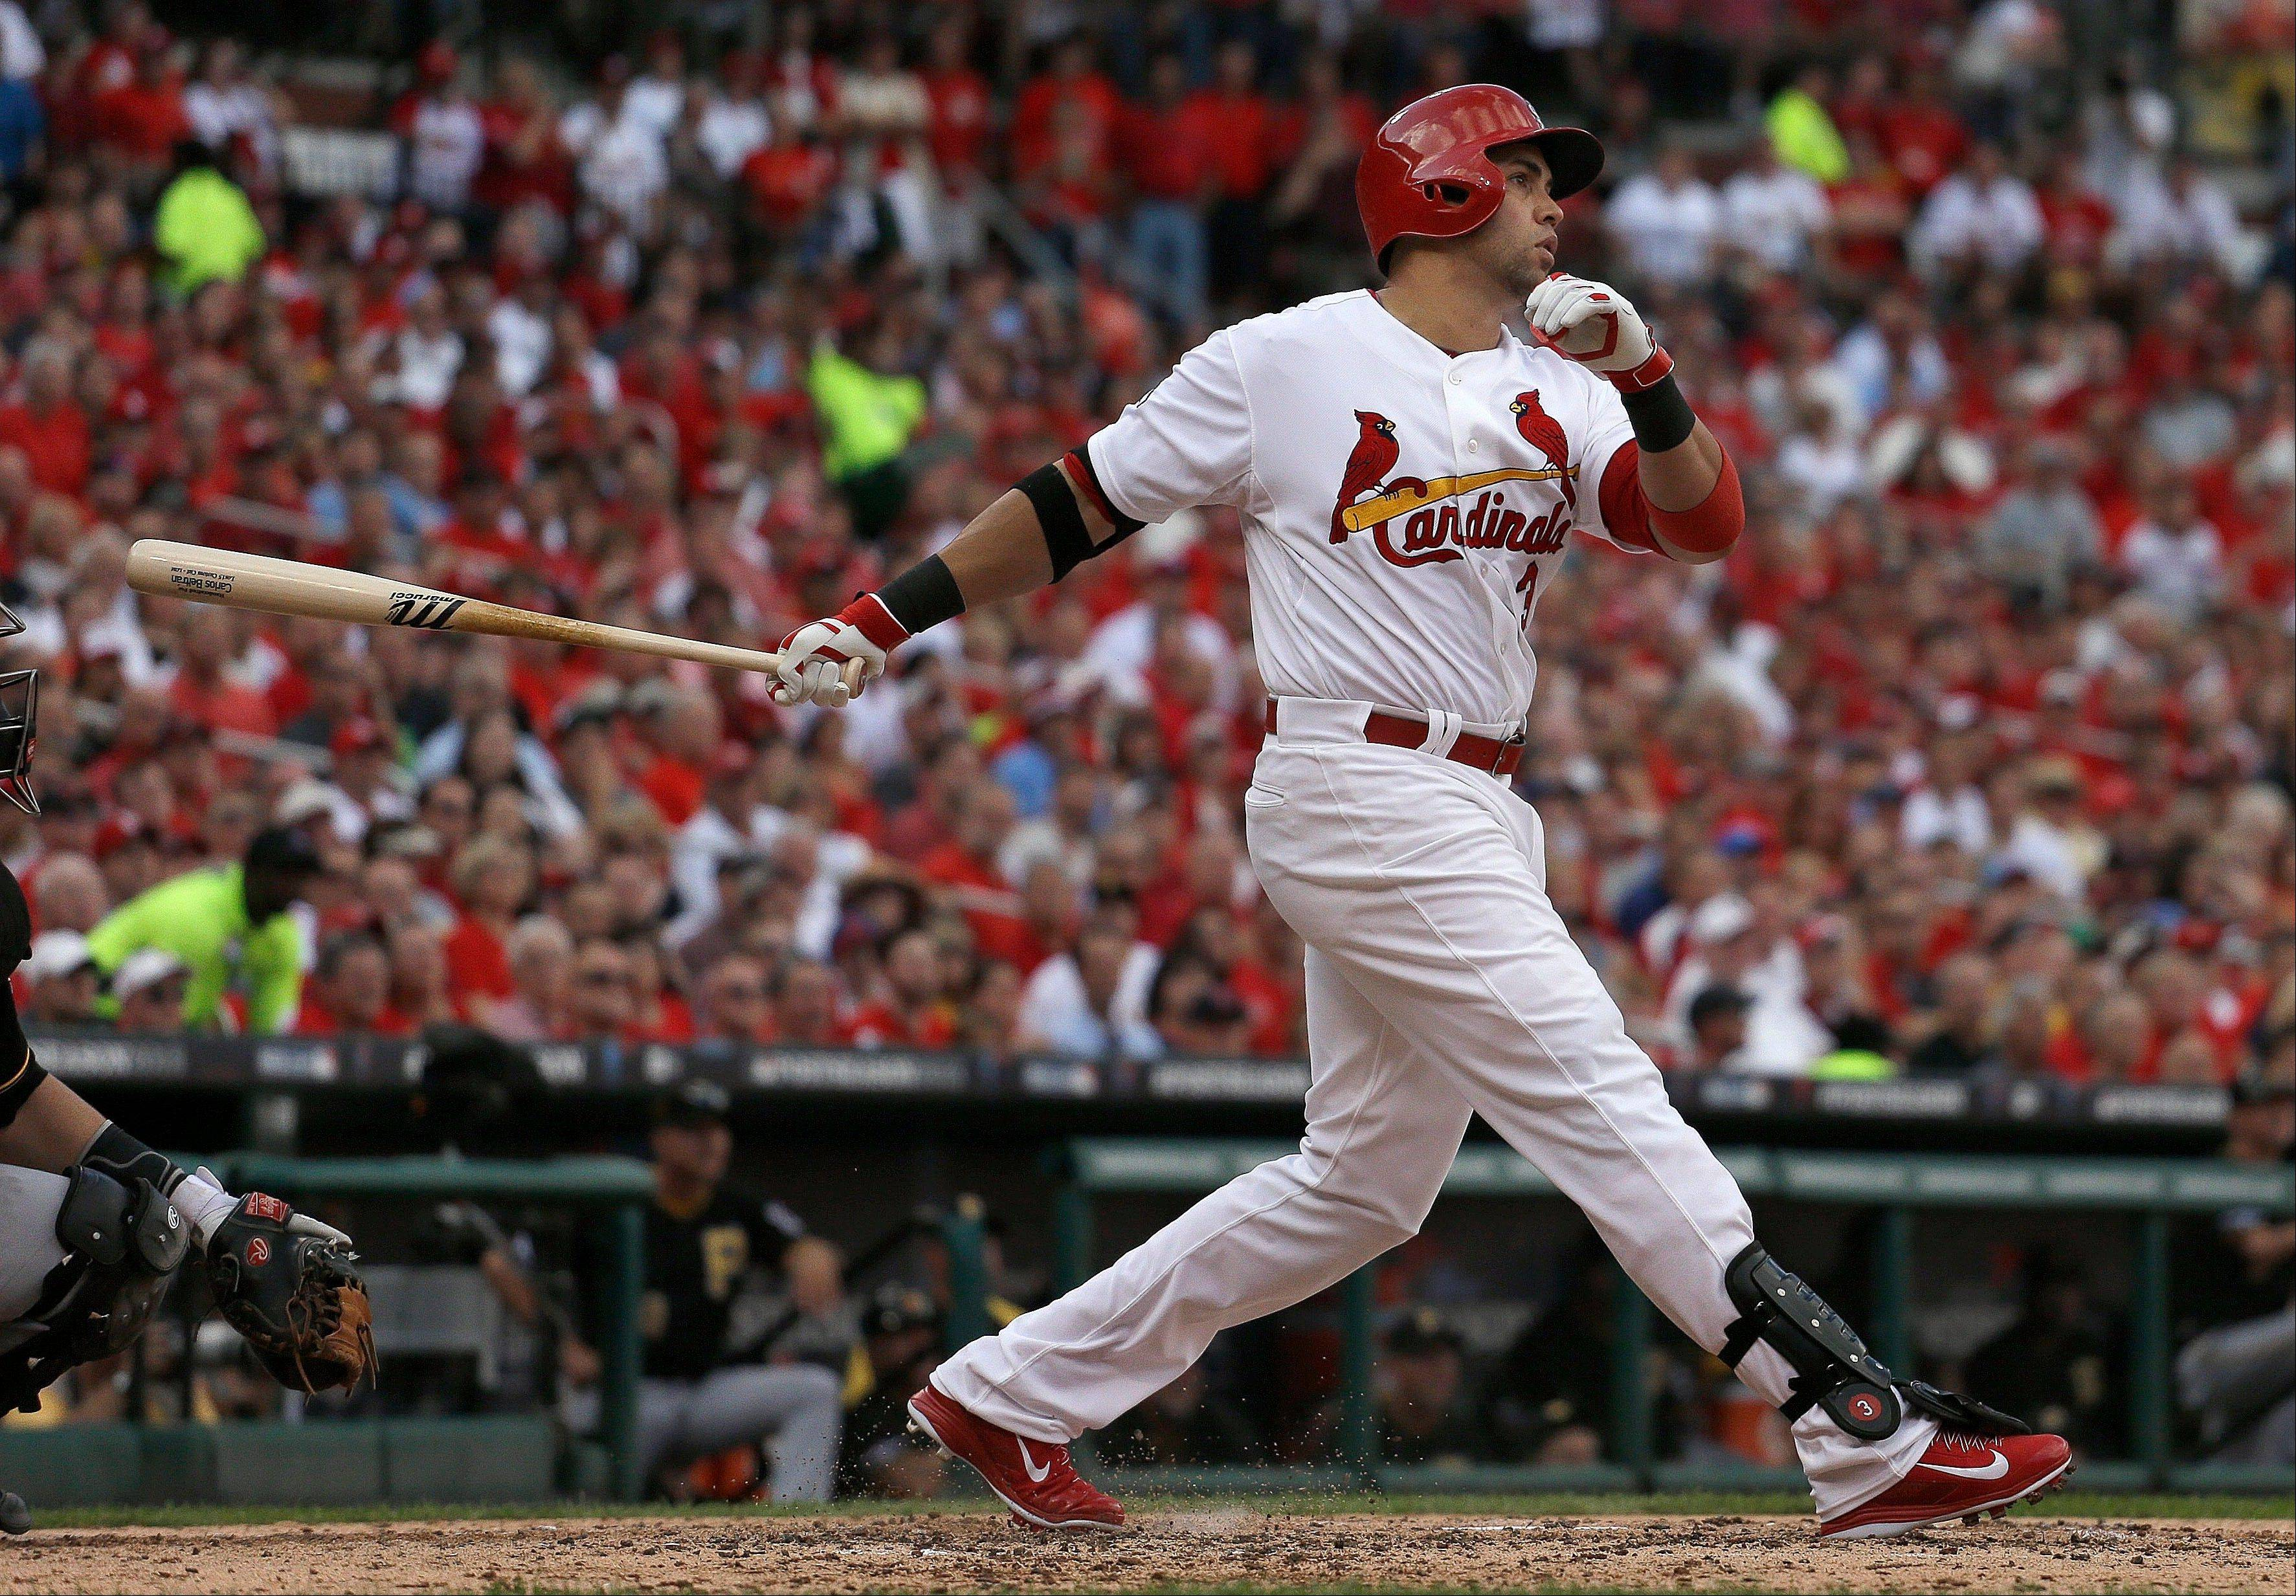 St. Louis Cardinals' Carlos Beltran follows through on a three-run home run against the Pittsburgh Pirates in the third inning of Game 1 of baseball's National League division series, Thursday, Oct. 3, 2013, in St. Louis.